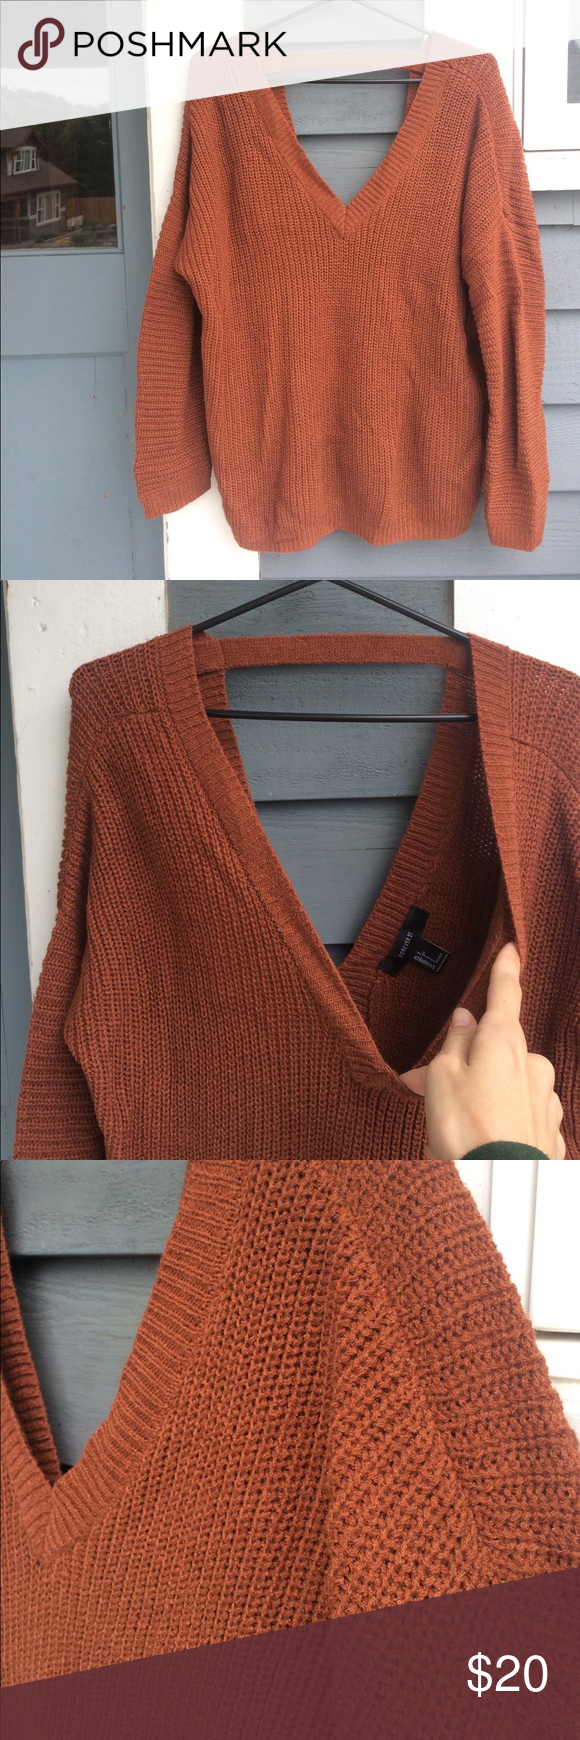 Sweater | Cas, Burnt orange and Forever 21